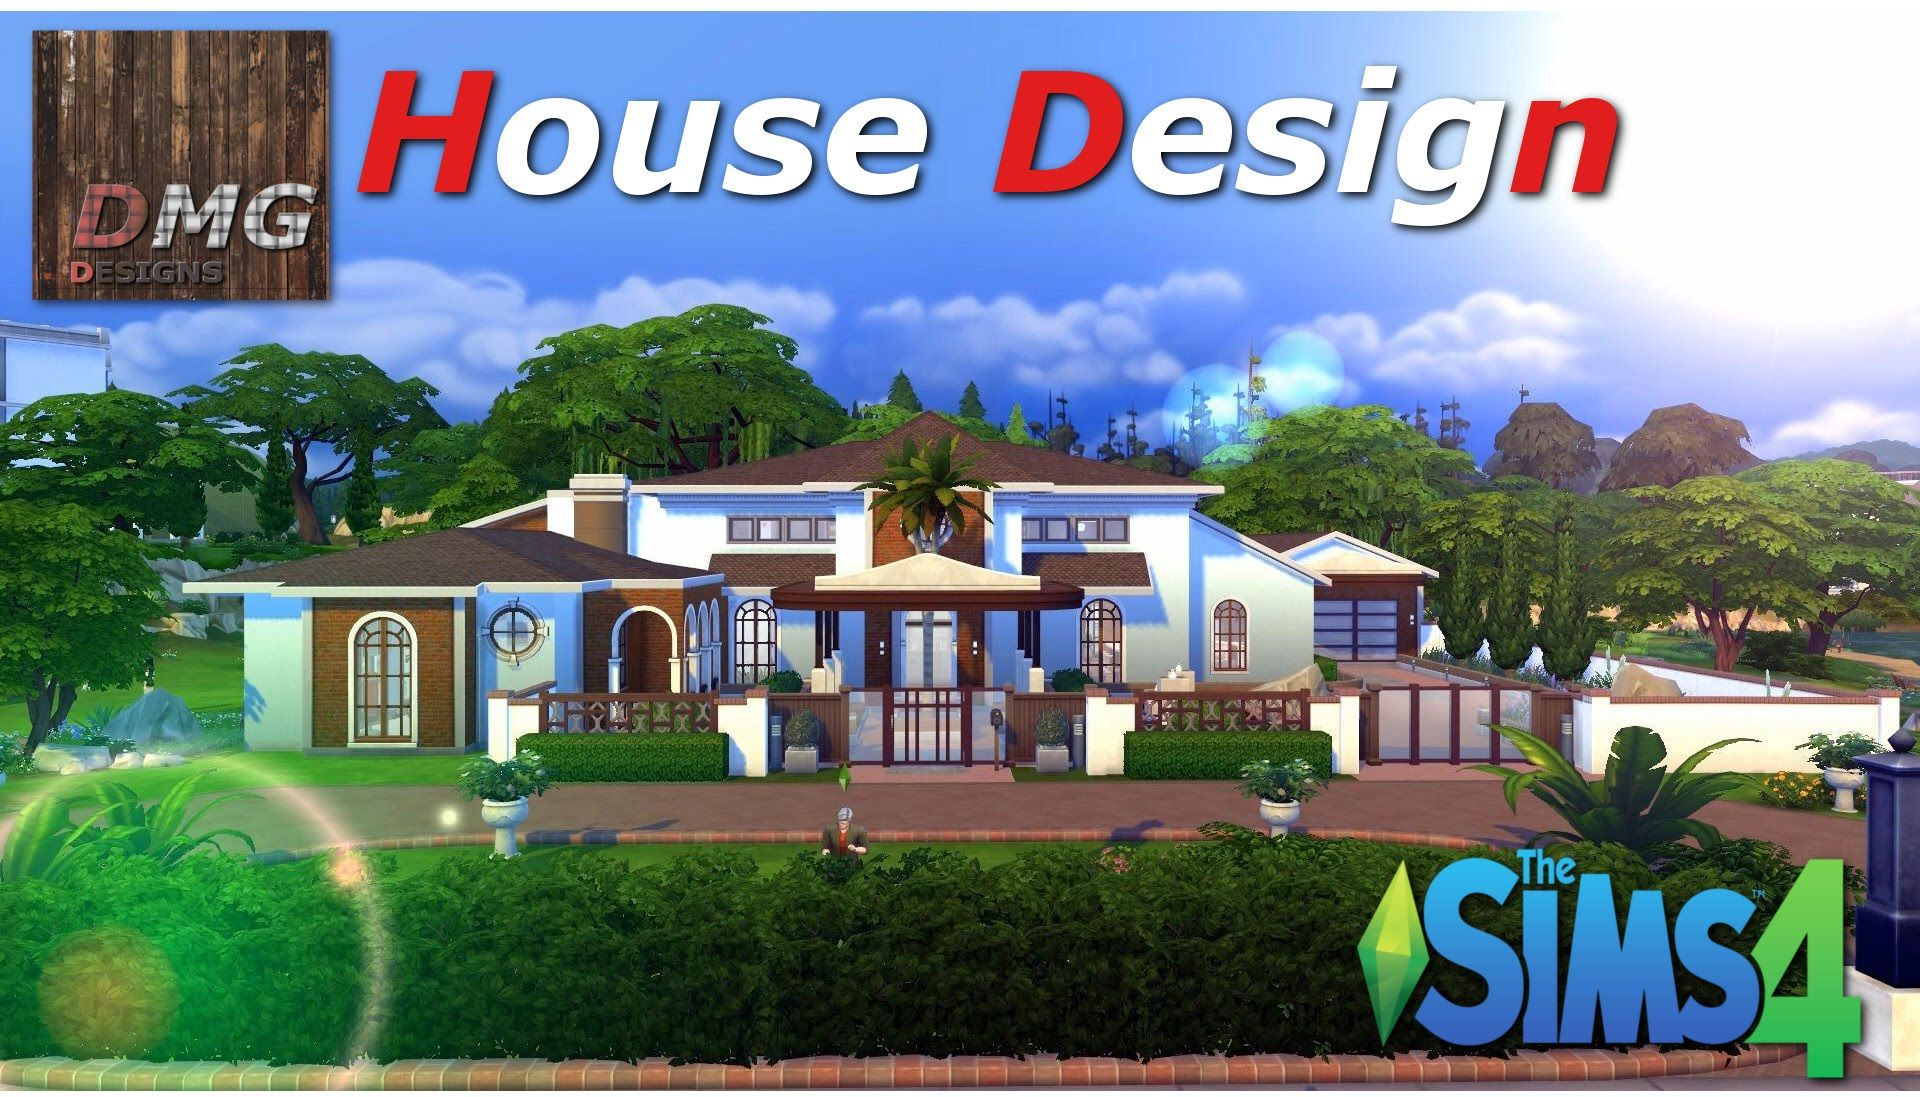 THE SIMS 4 House design Tour Forgotten Dream Spanish Mansion